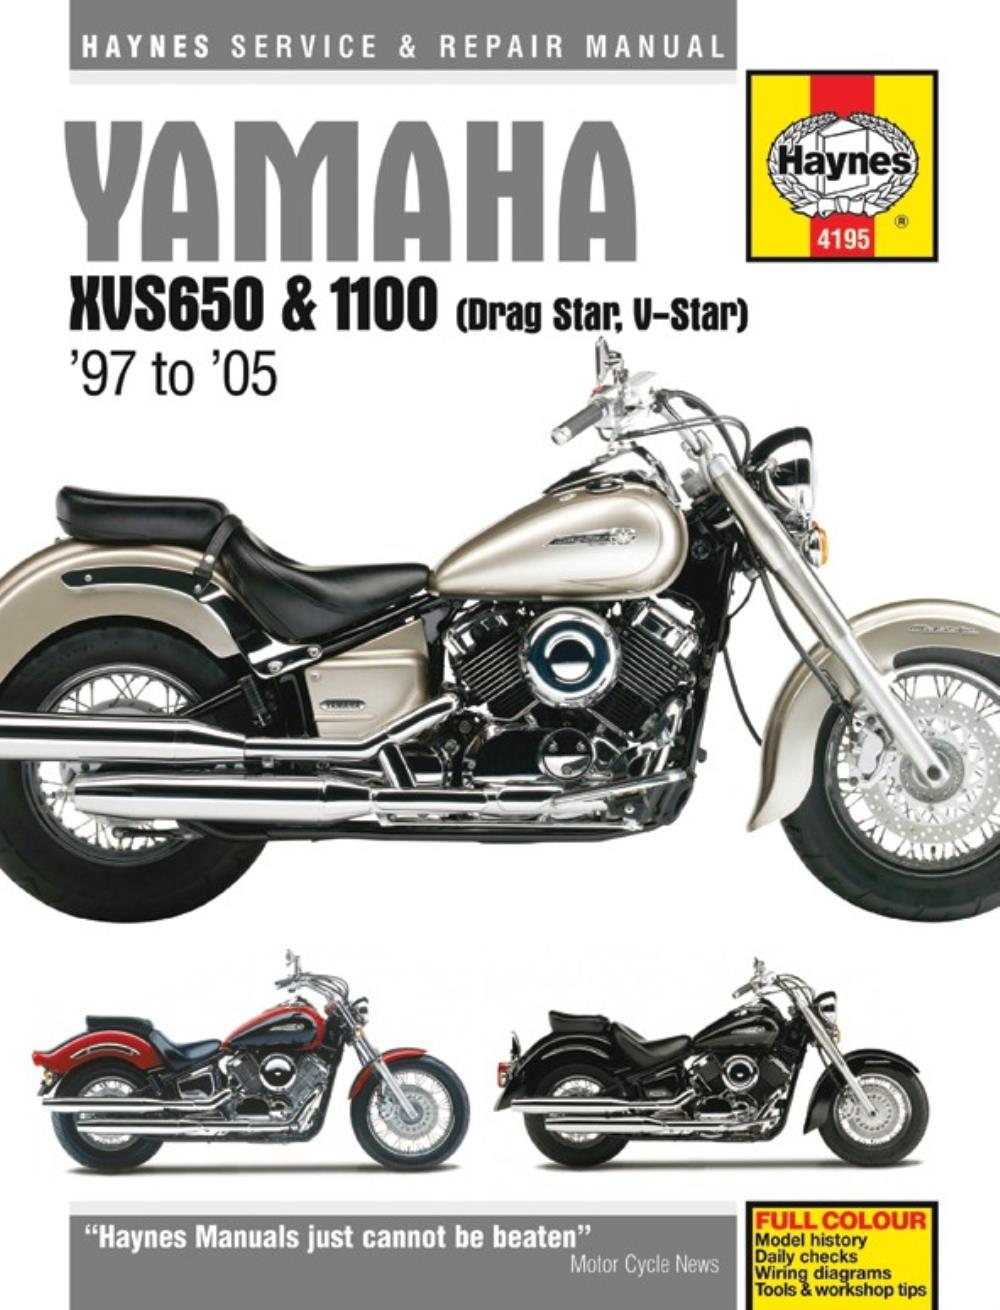 Haynes Manual 4195 Yamaha Xvs650 1100 Drag Star 97 05 Ebay Wiring Diagram Image Is Loading Amp